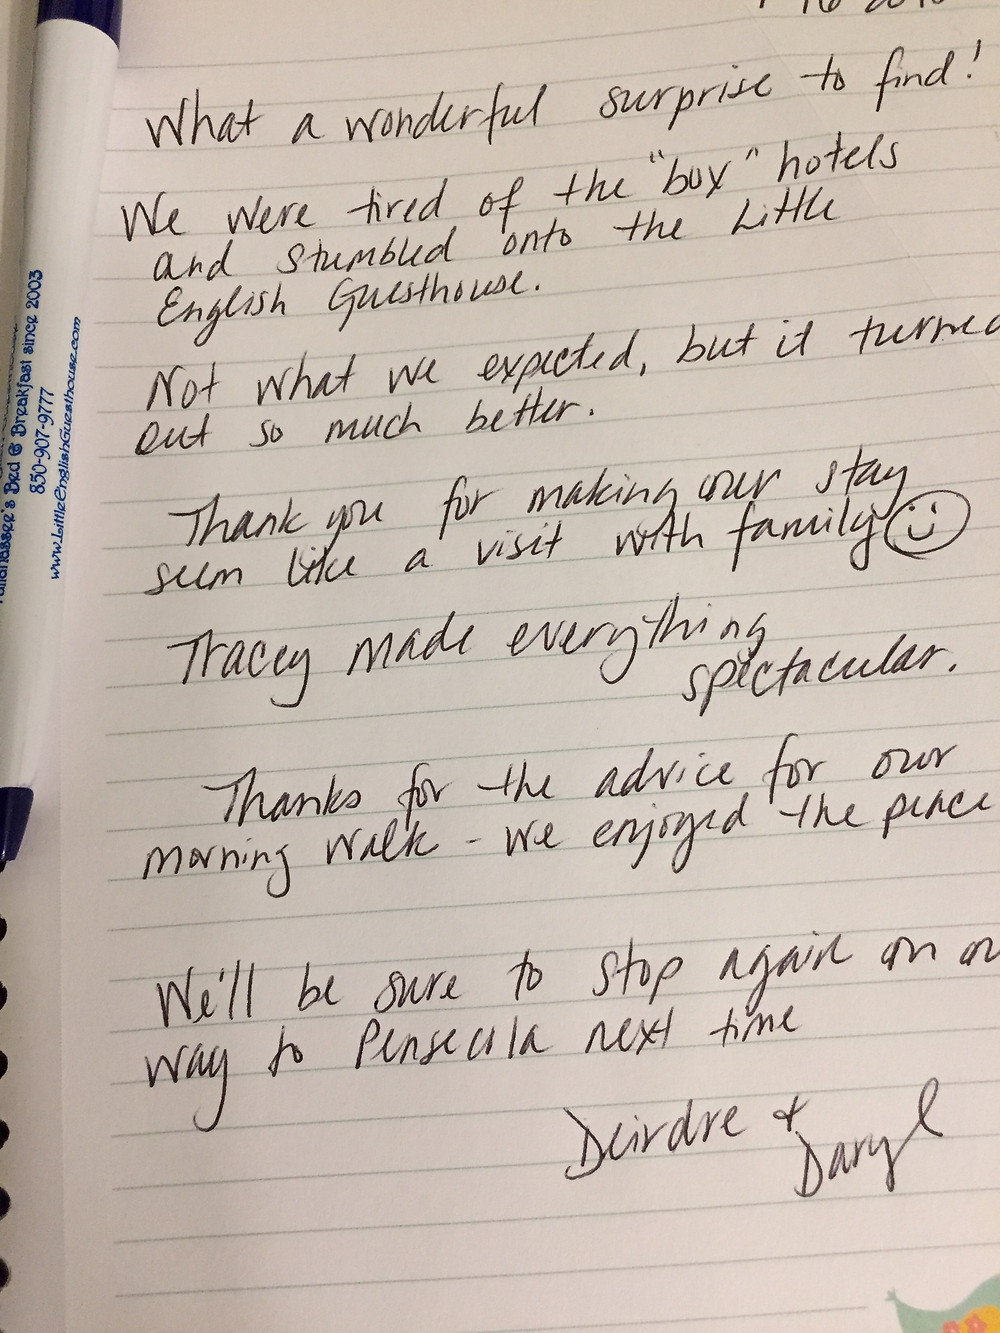 Guest comment / review of the Little English Guesthouse